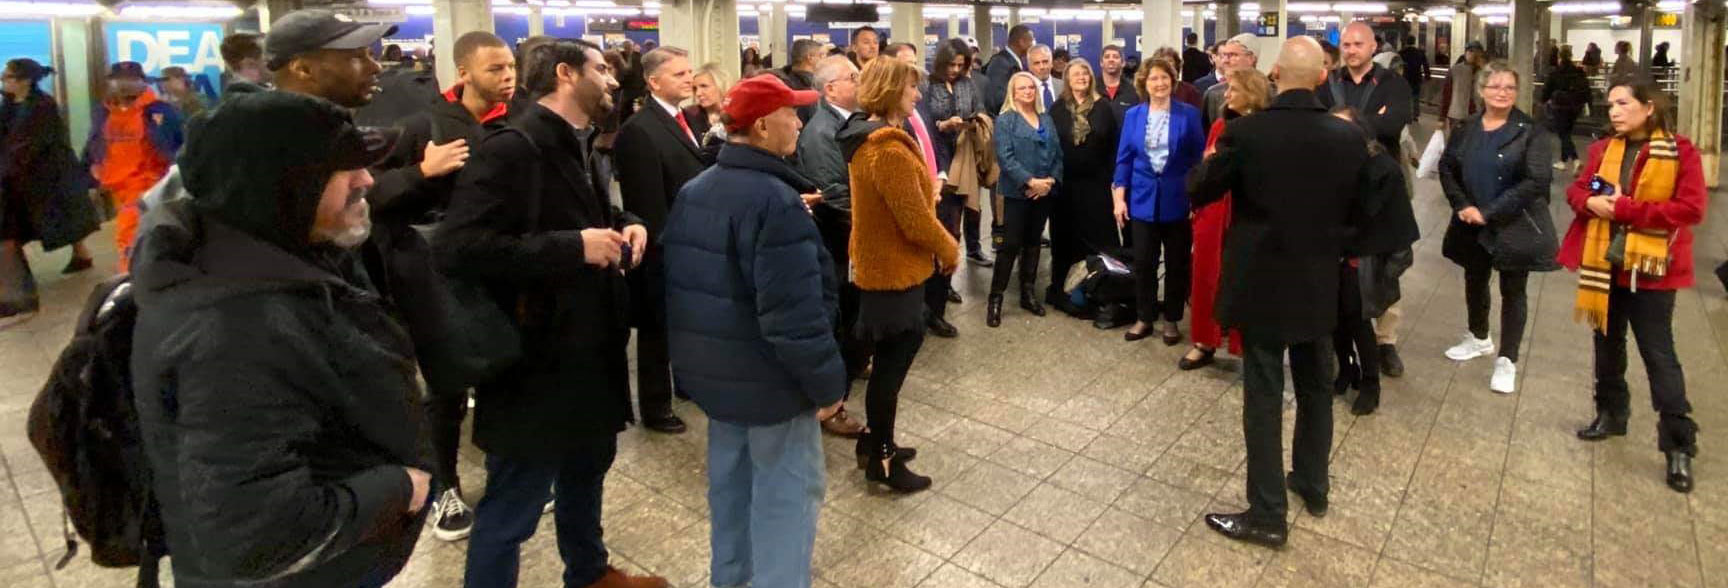 Leon Brie speaking in New York City subway station